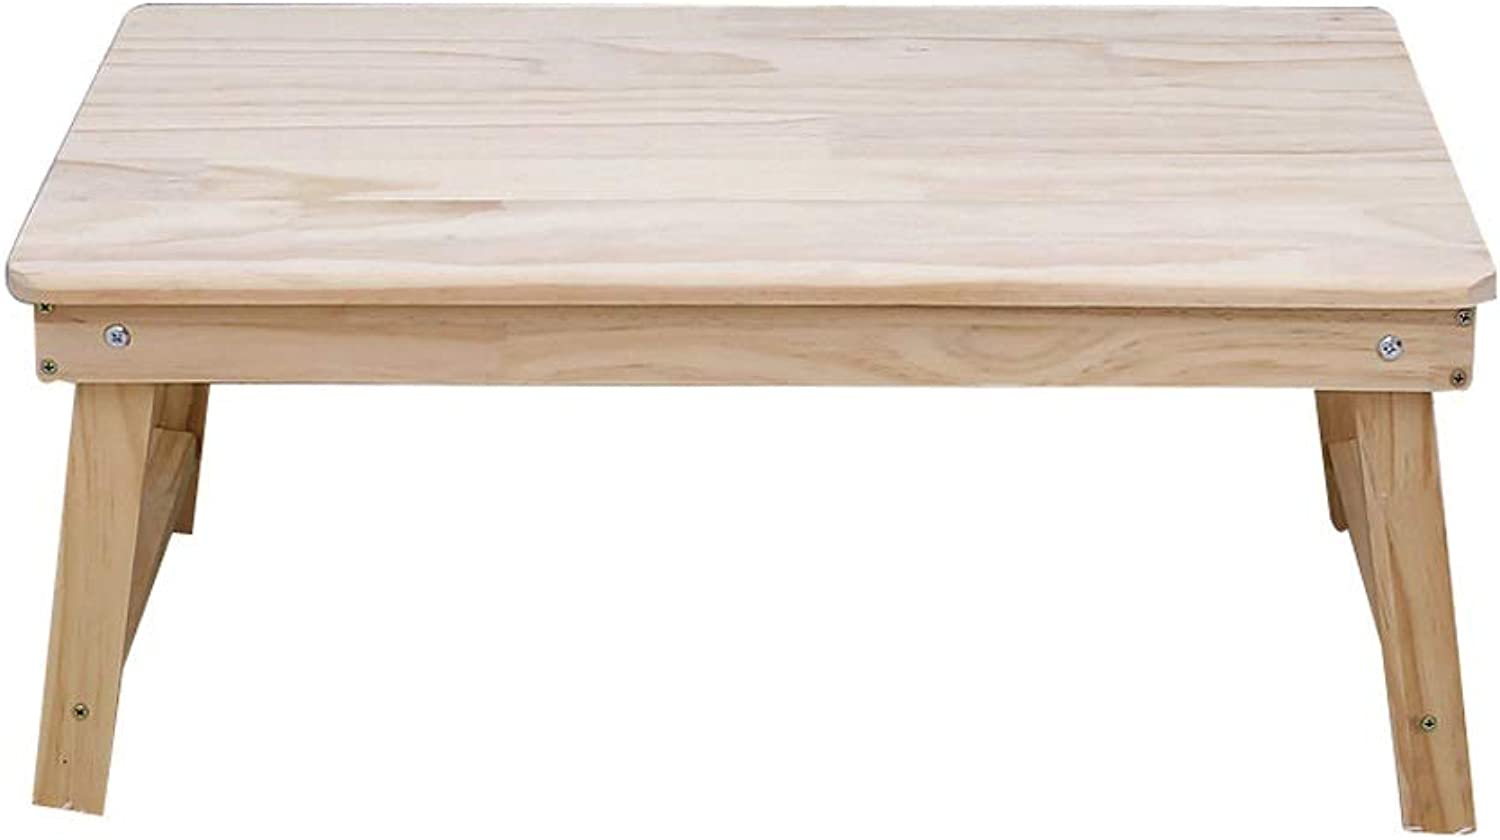 Foldable Removable Solid Wood Small Table, Portable Desk, Suitable for Bed, Sofa, etc, It is Also Suitable for Breakfast Table, color, Size Optional (color   Light color)